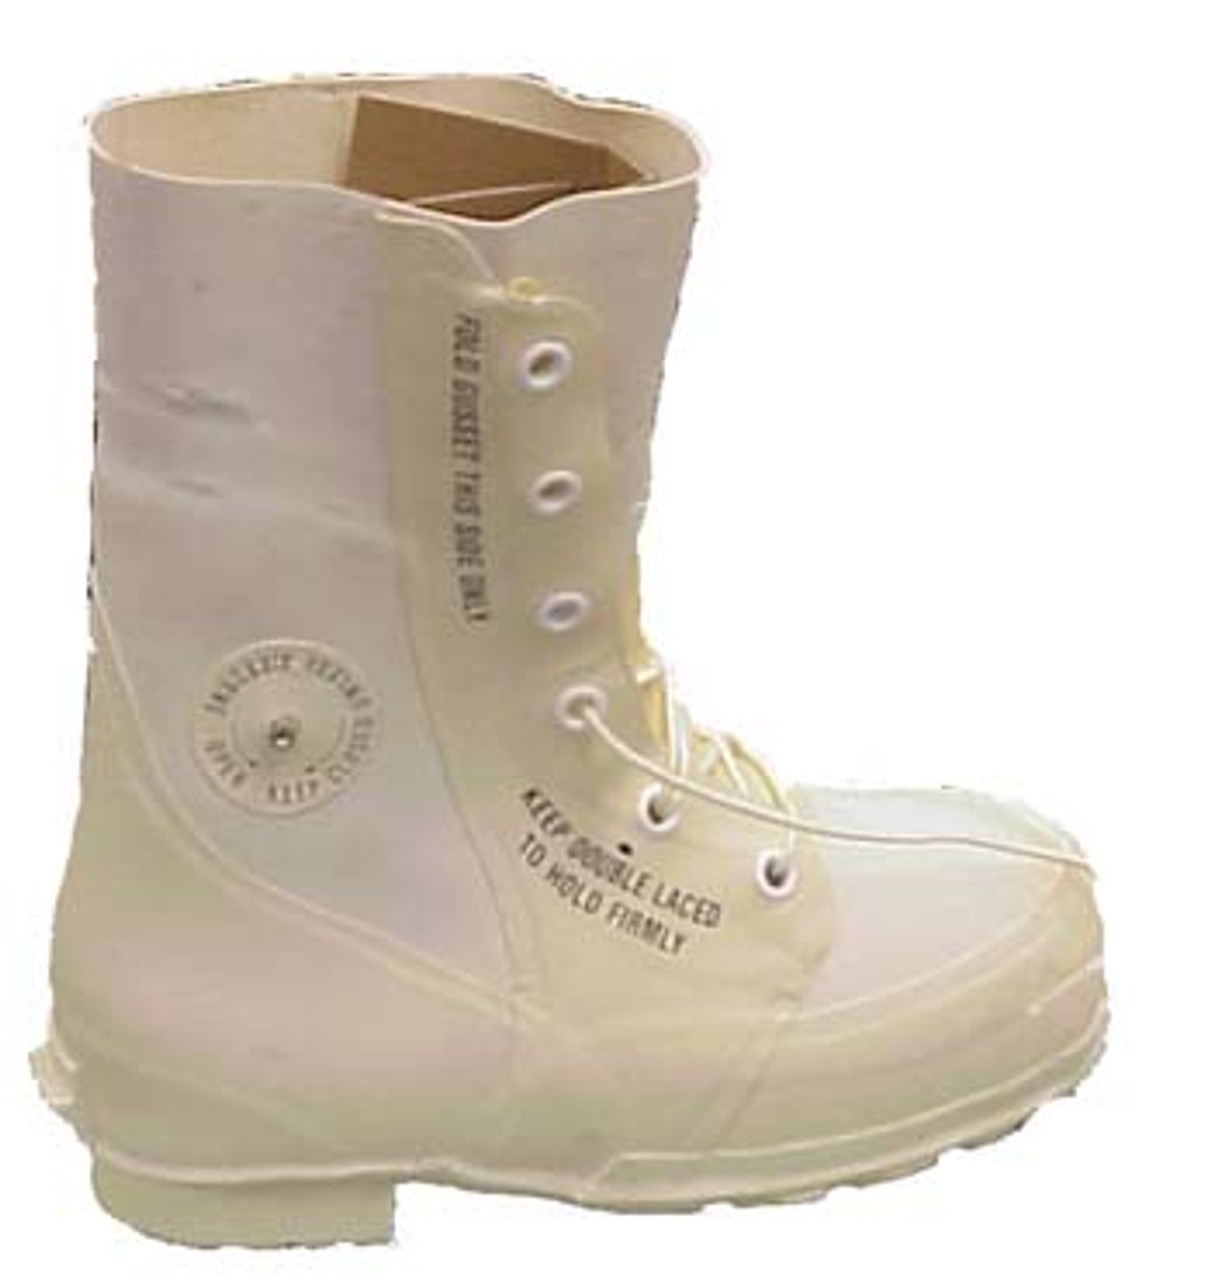 Military boots cold weather bata and